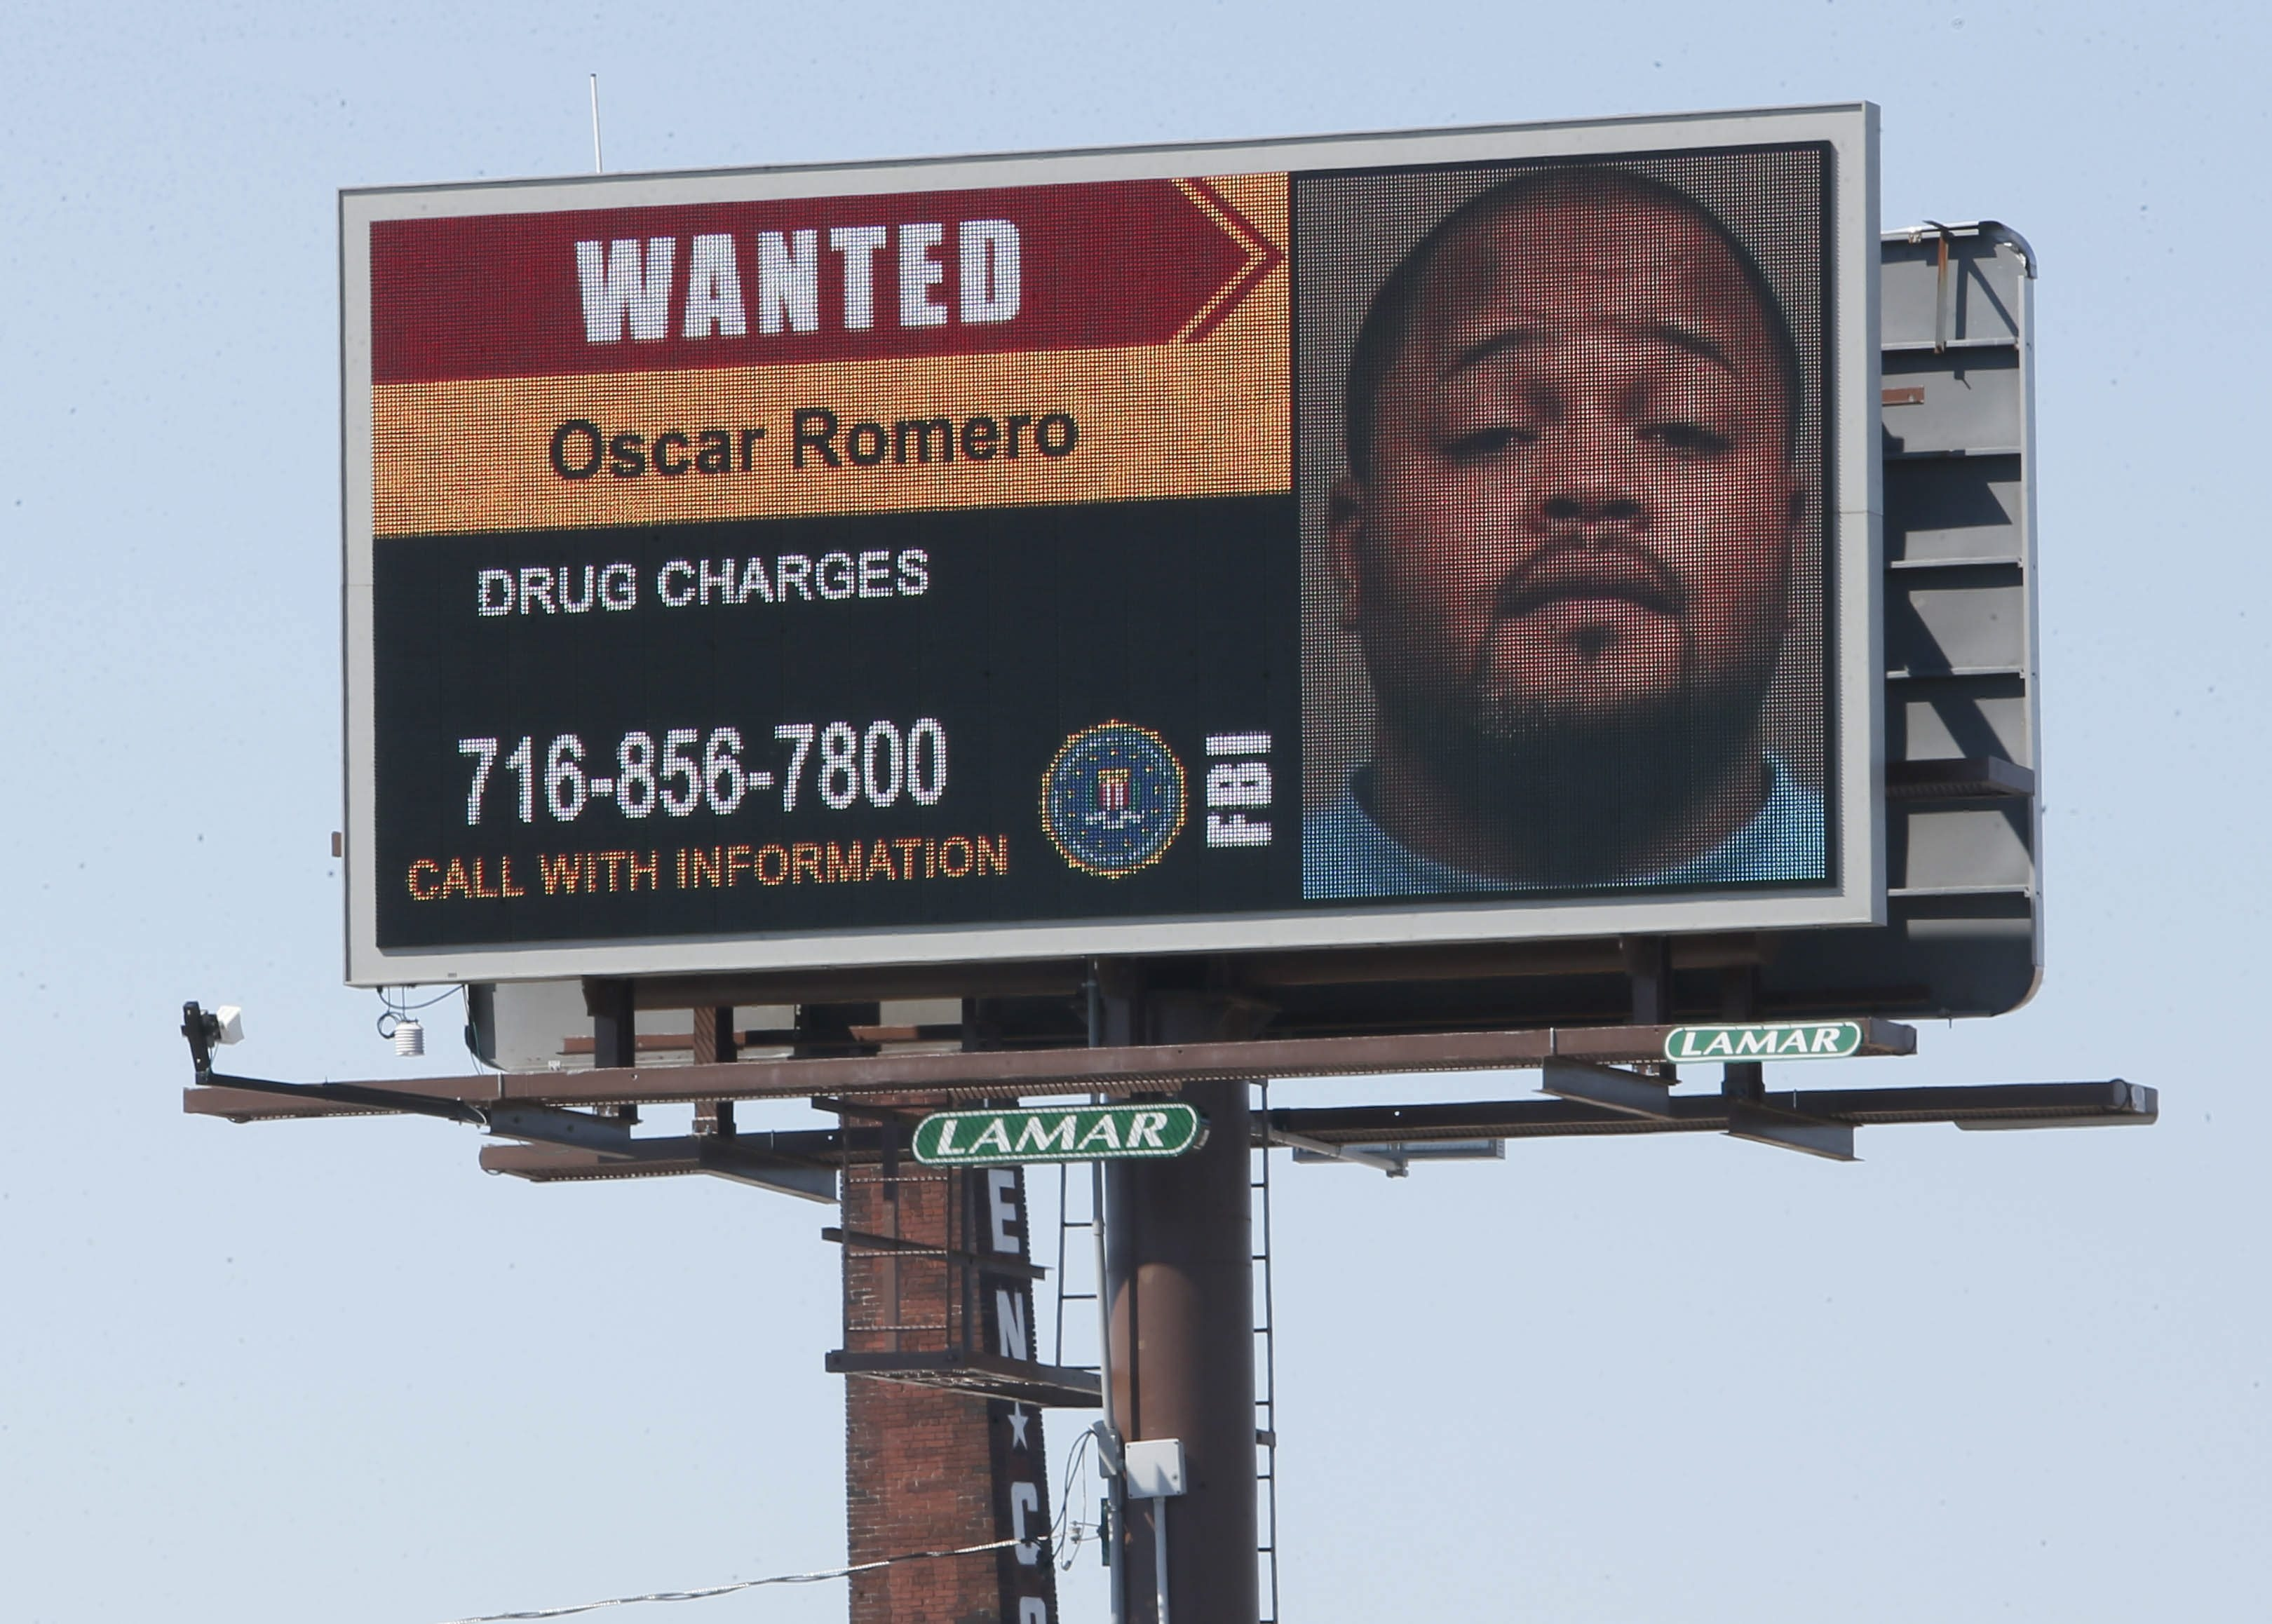 The FBI used billboard to enlist help from the community in locating drug suspect Oscar Romero, who was believed to have recently returned to the area from Puerto Rico. Romero surrendered himself to FBI custody on Friday.